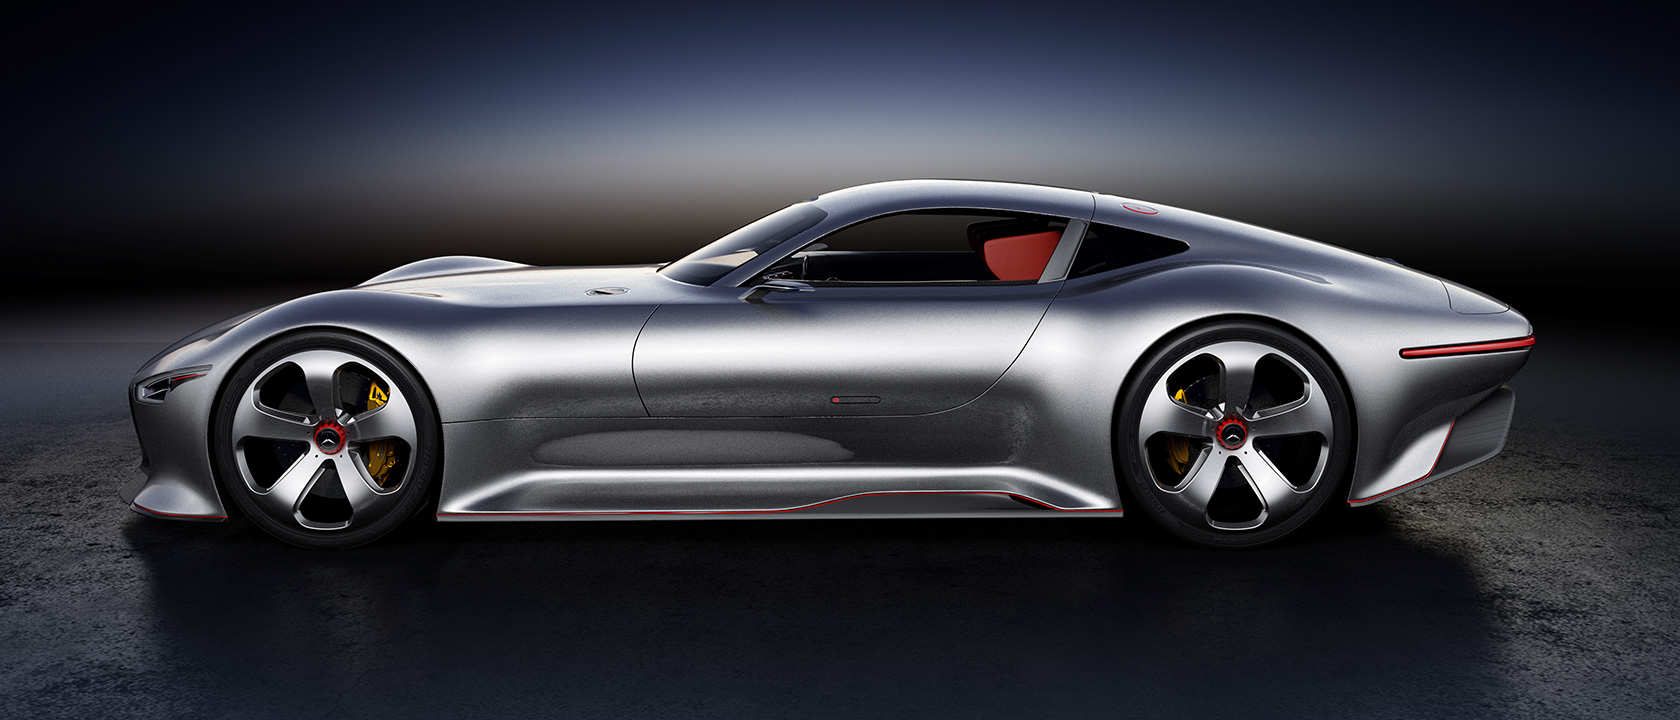 Nice Mercedes Benz AMG Vision Gran Turismo